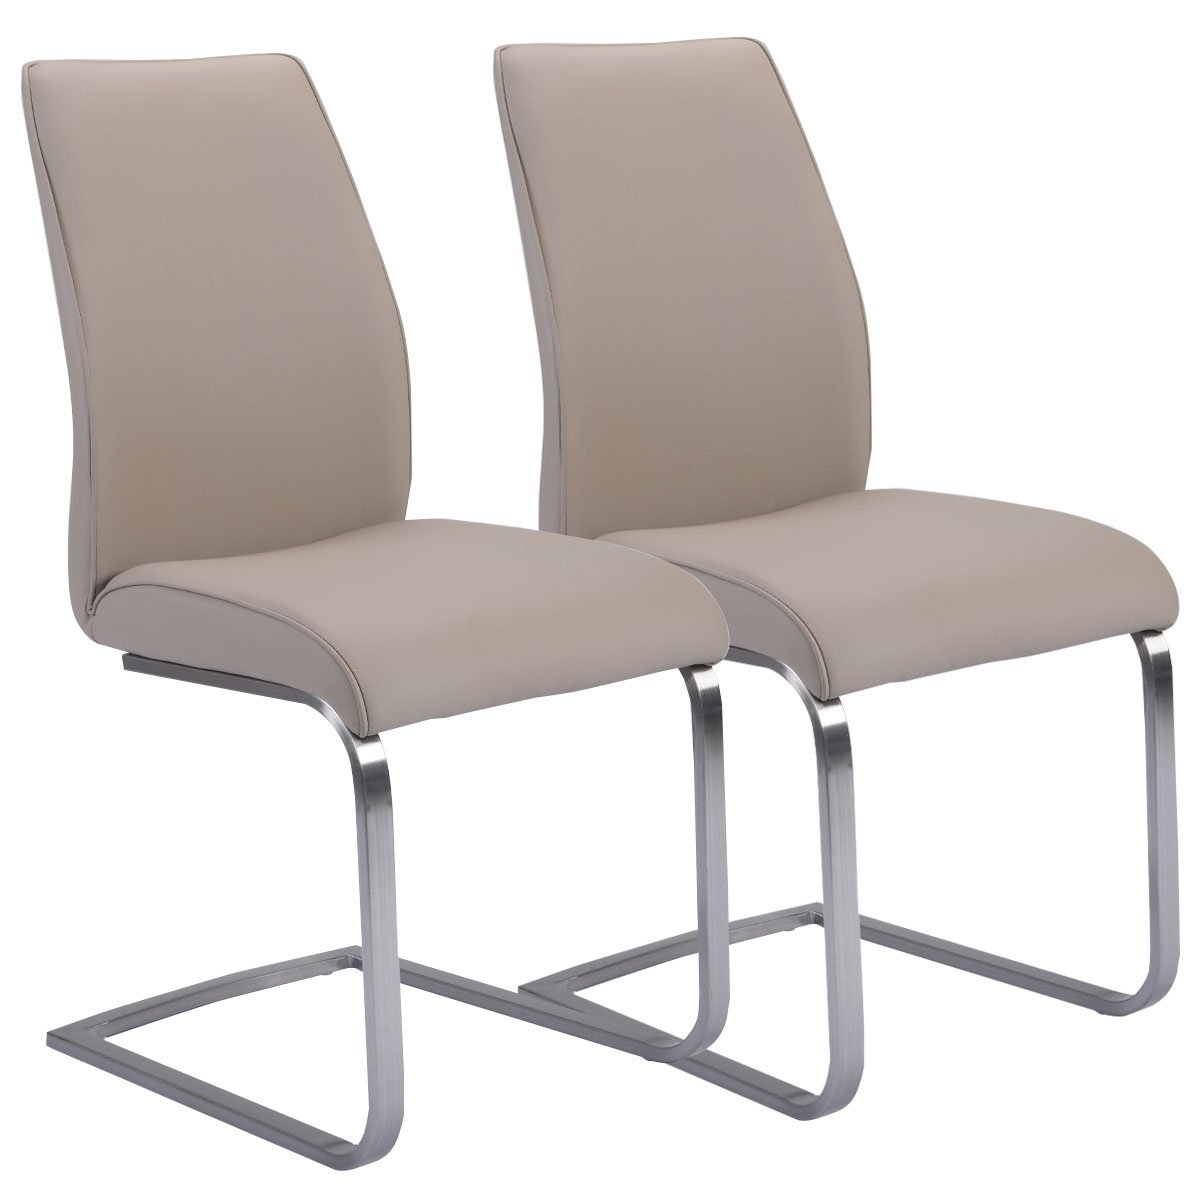 High Dining Room Chairs: Modern Leather Dining Chairs: Amazon.com